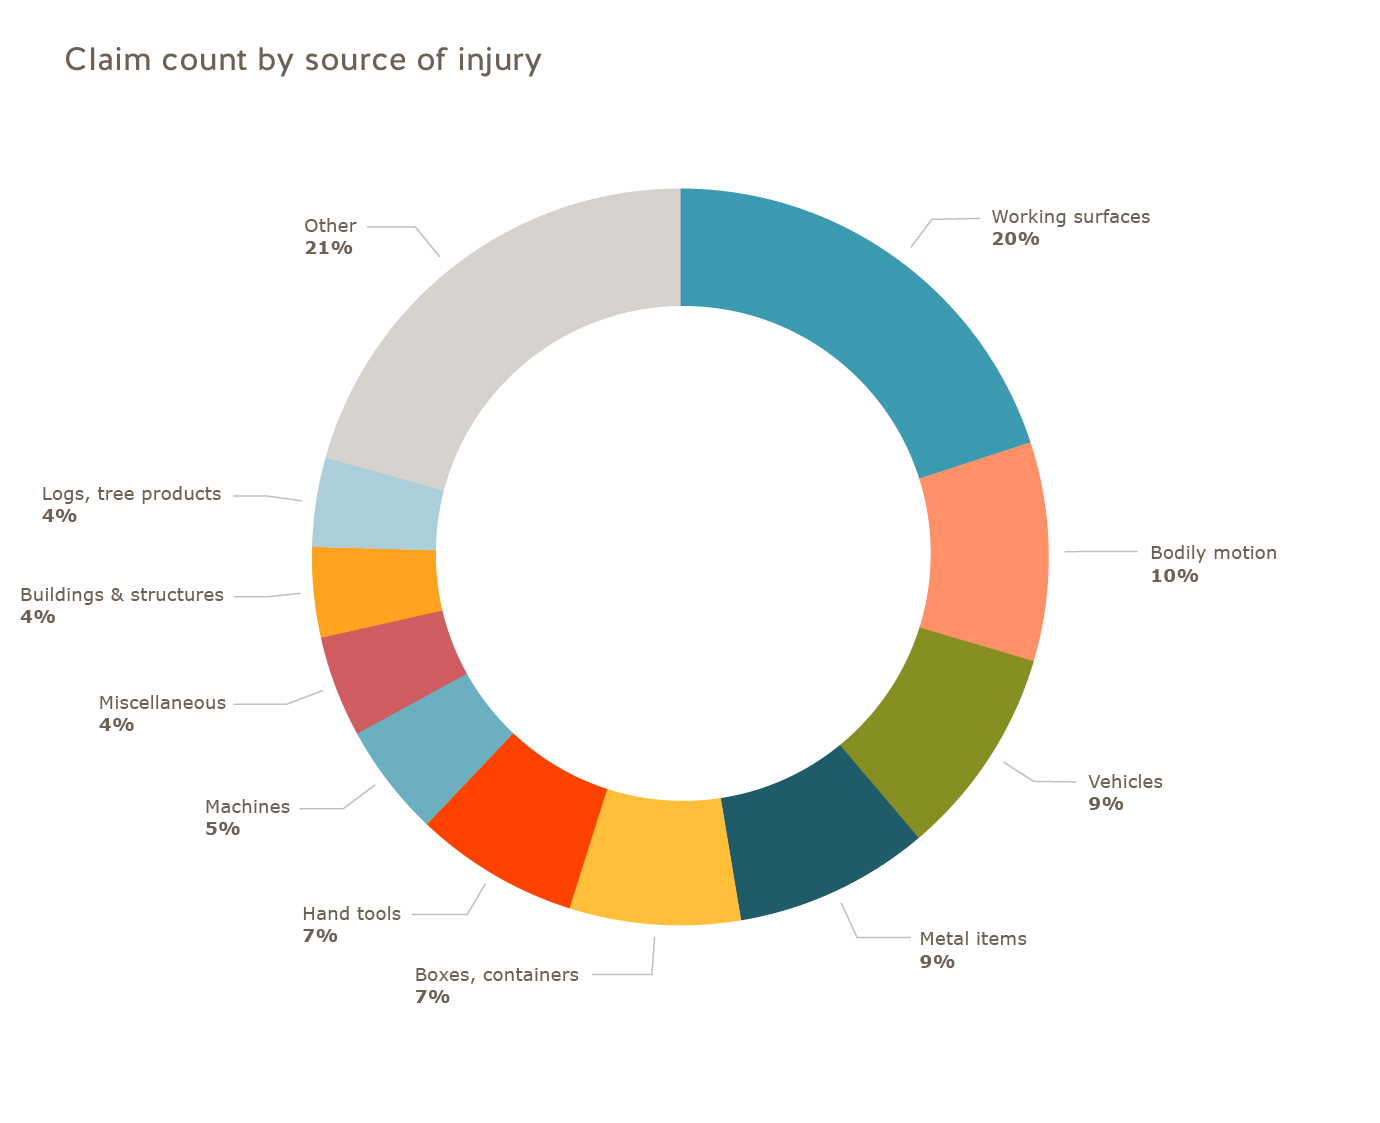 Small business claim count by source of injury 2016: working surfaces=20%; bodily motion=10%; vehicles=9%; metal items=9%; boxes, containers=7%; hand tools=7%; machines=5%; miscellaneous=4%; buildings and structures=4%; logs, tree products=4%; other=21%